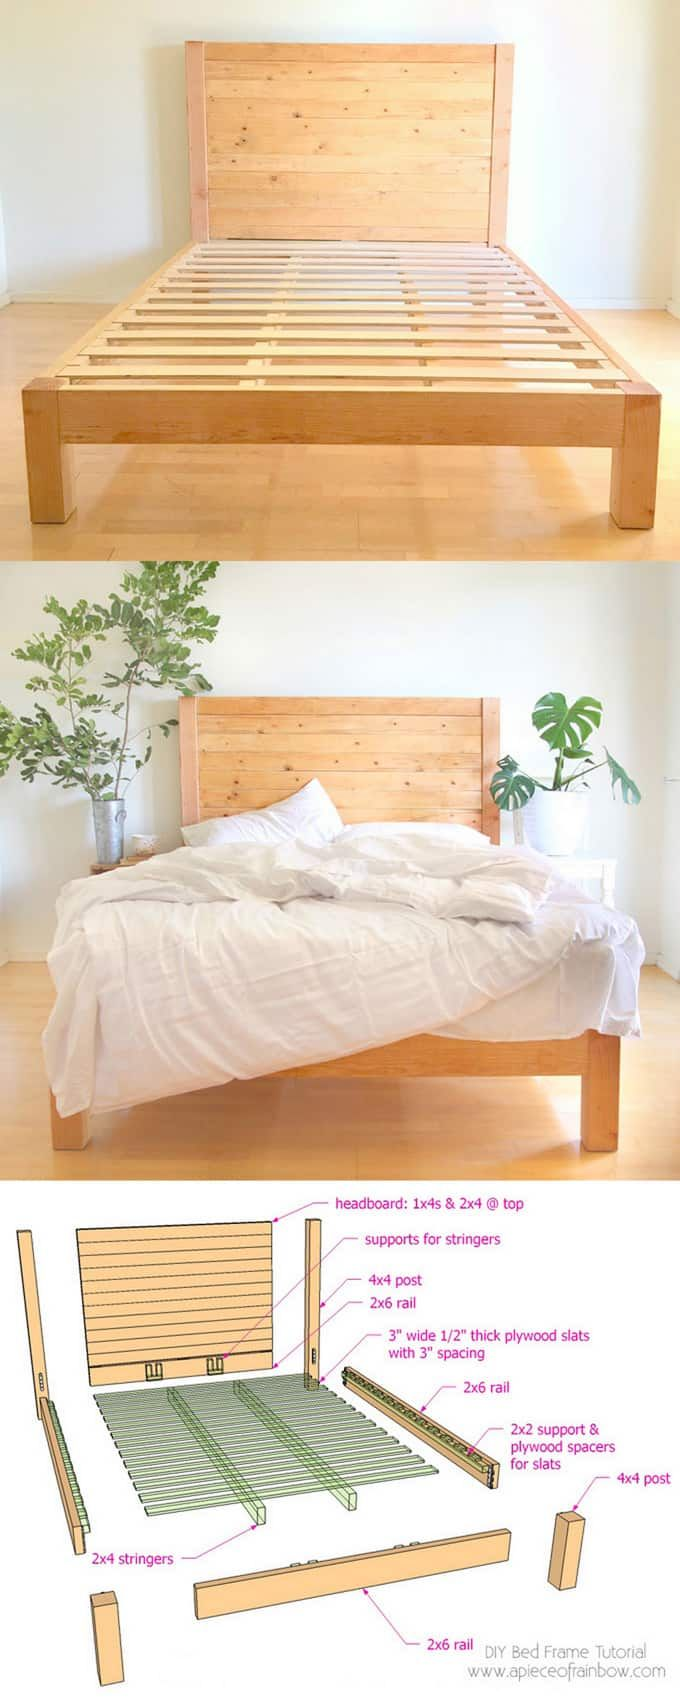 How To Build A Beautiful Diy Bed Frame Wood Headboard Easily